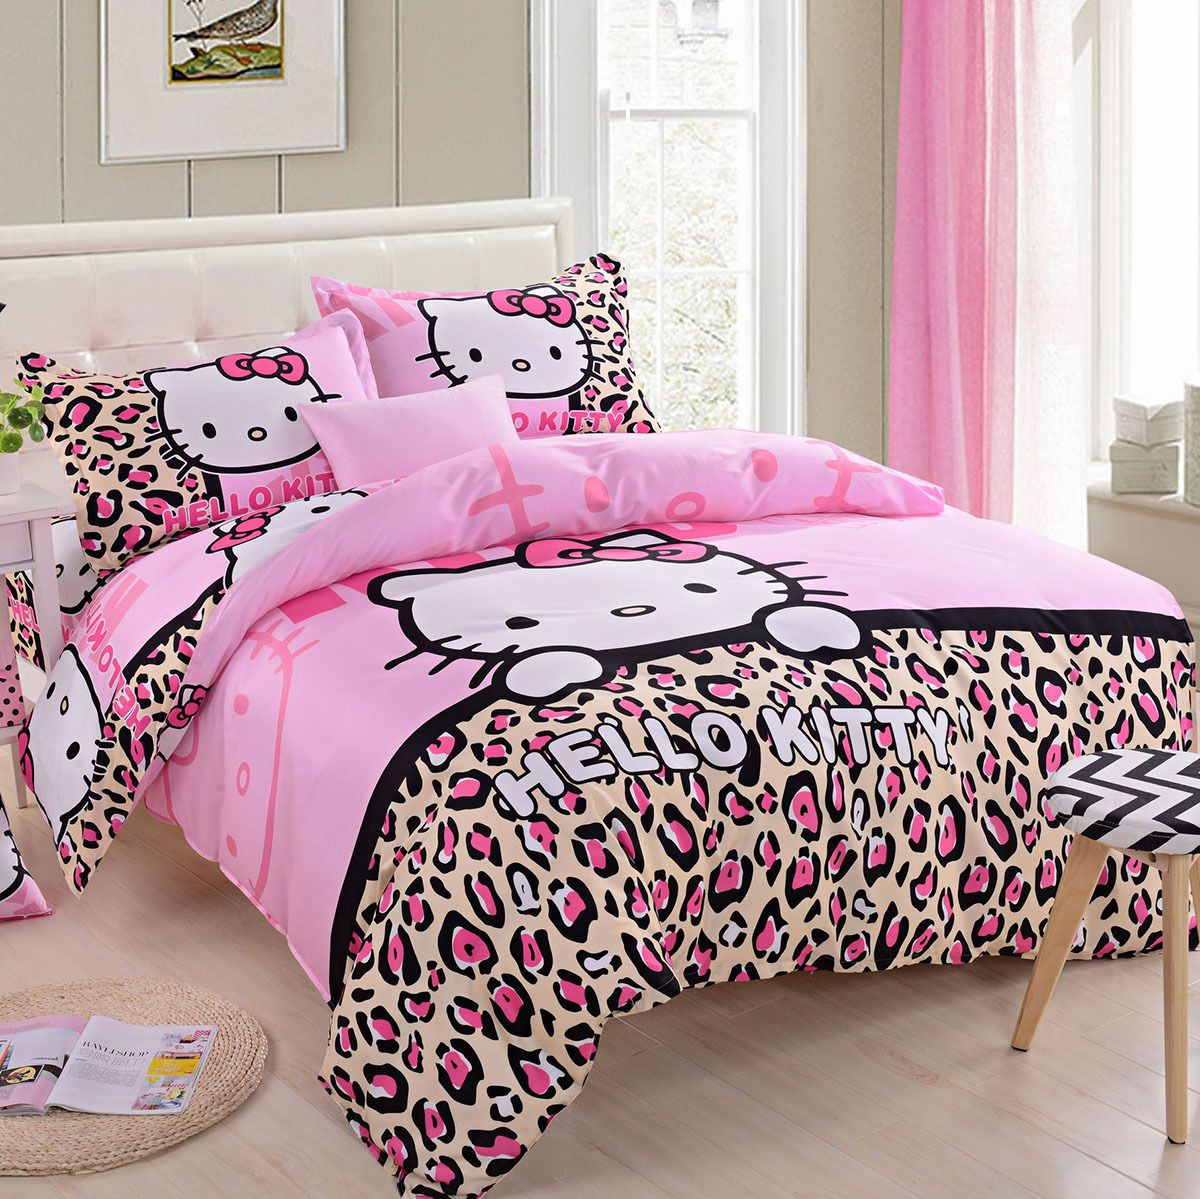 Details About Kids Hello Kitty New Collection Bedding Duvet Cover